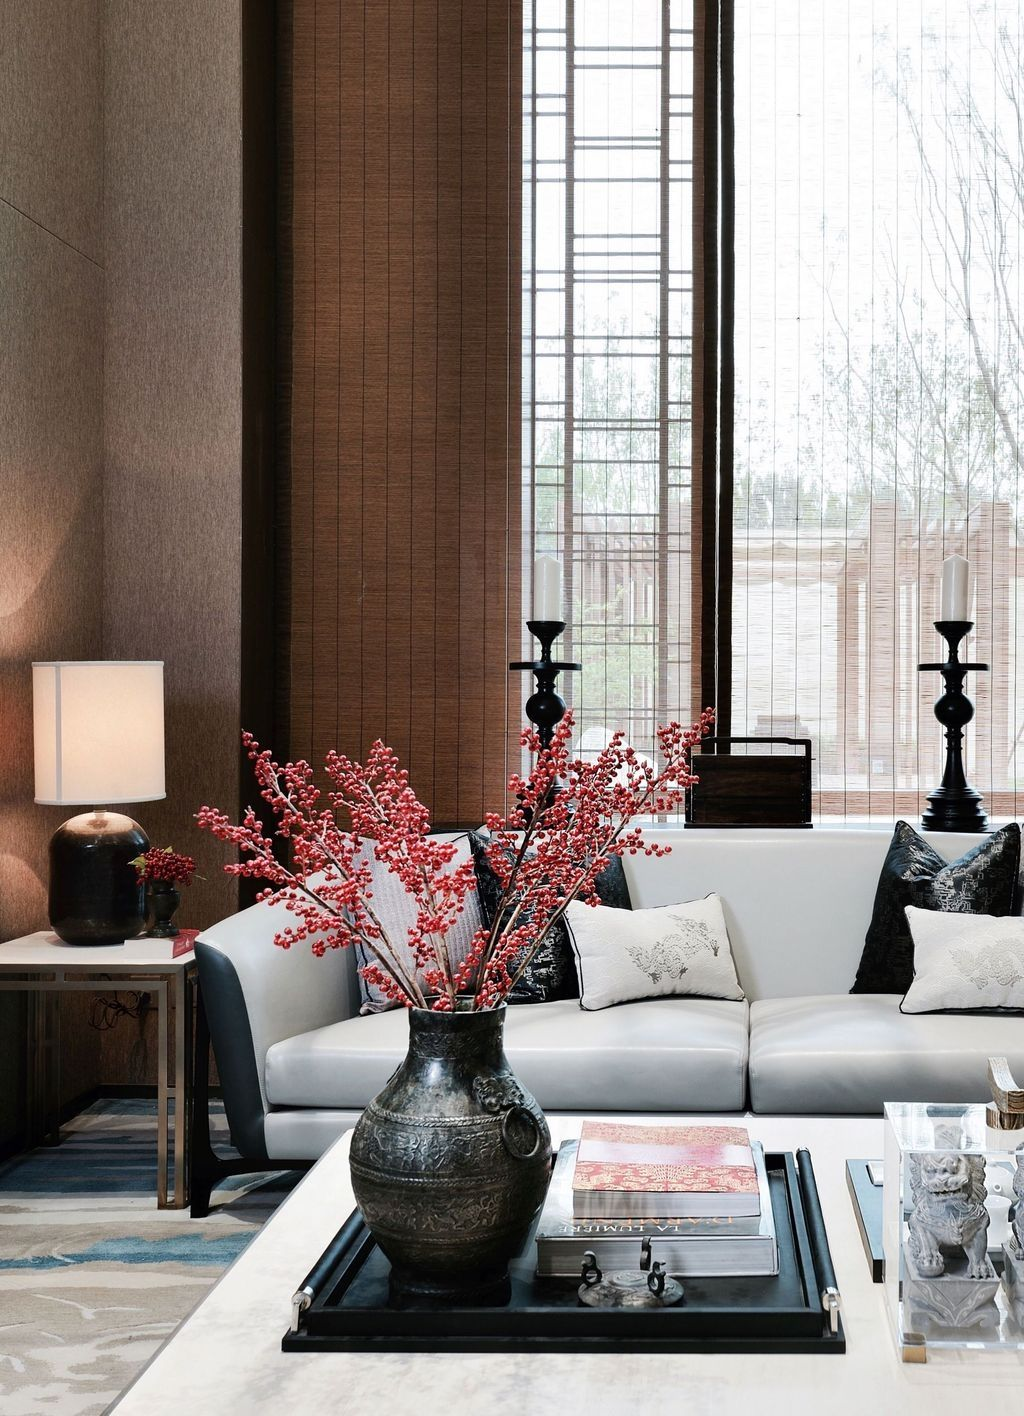 30 Gorgeous Chinese Living Room Design Ideas Asian Decor Living Room Living Room Design Modern Asian Home Decor Asian decor living room